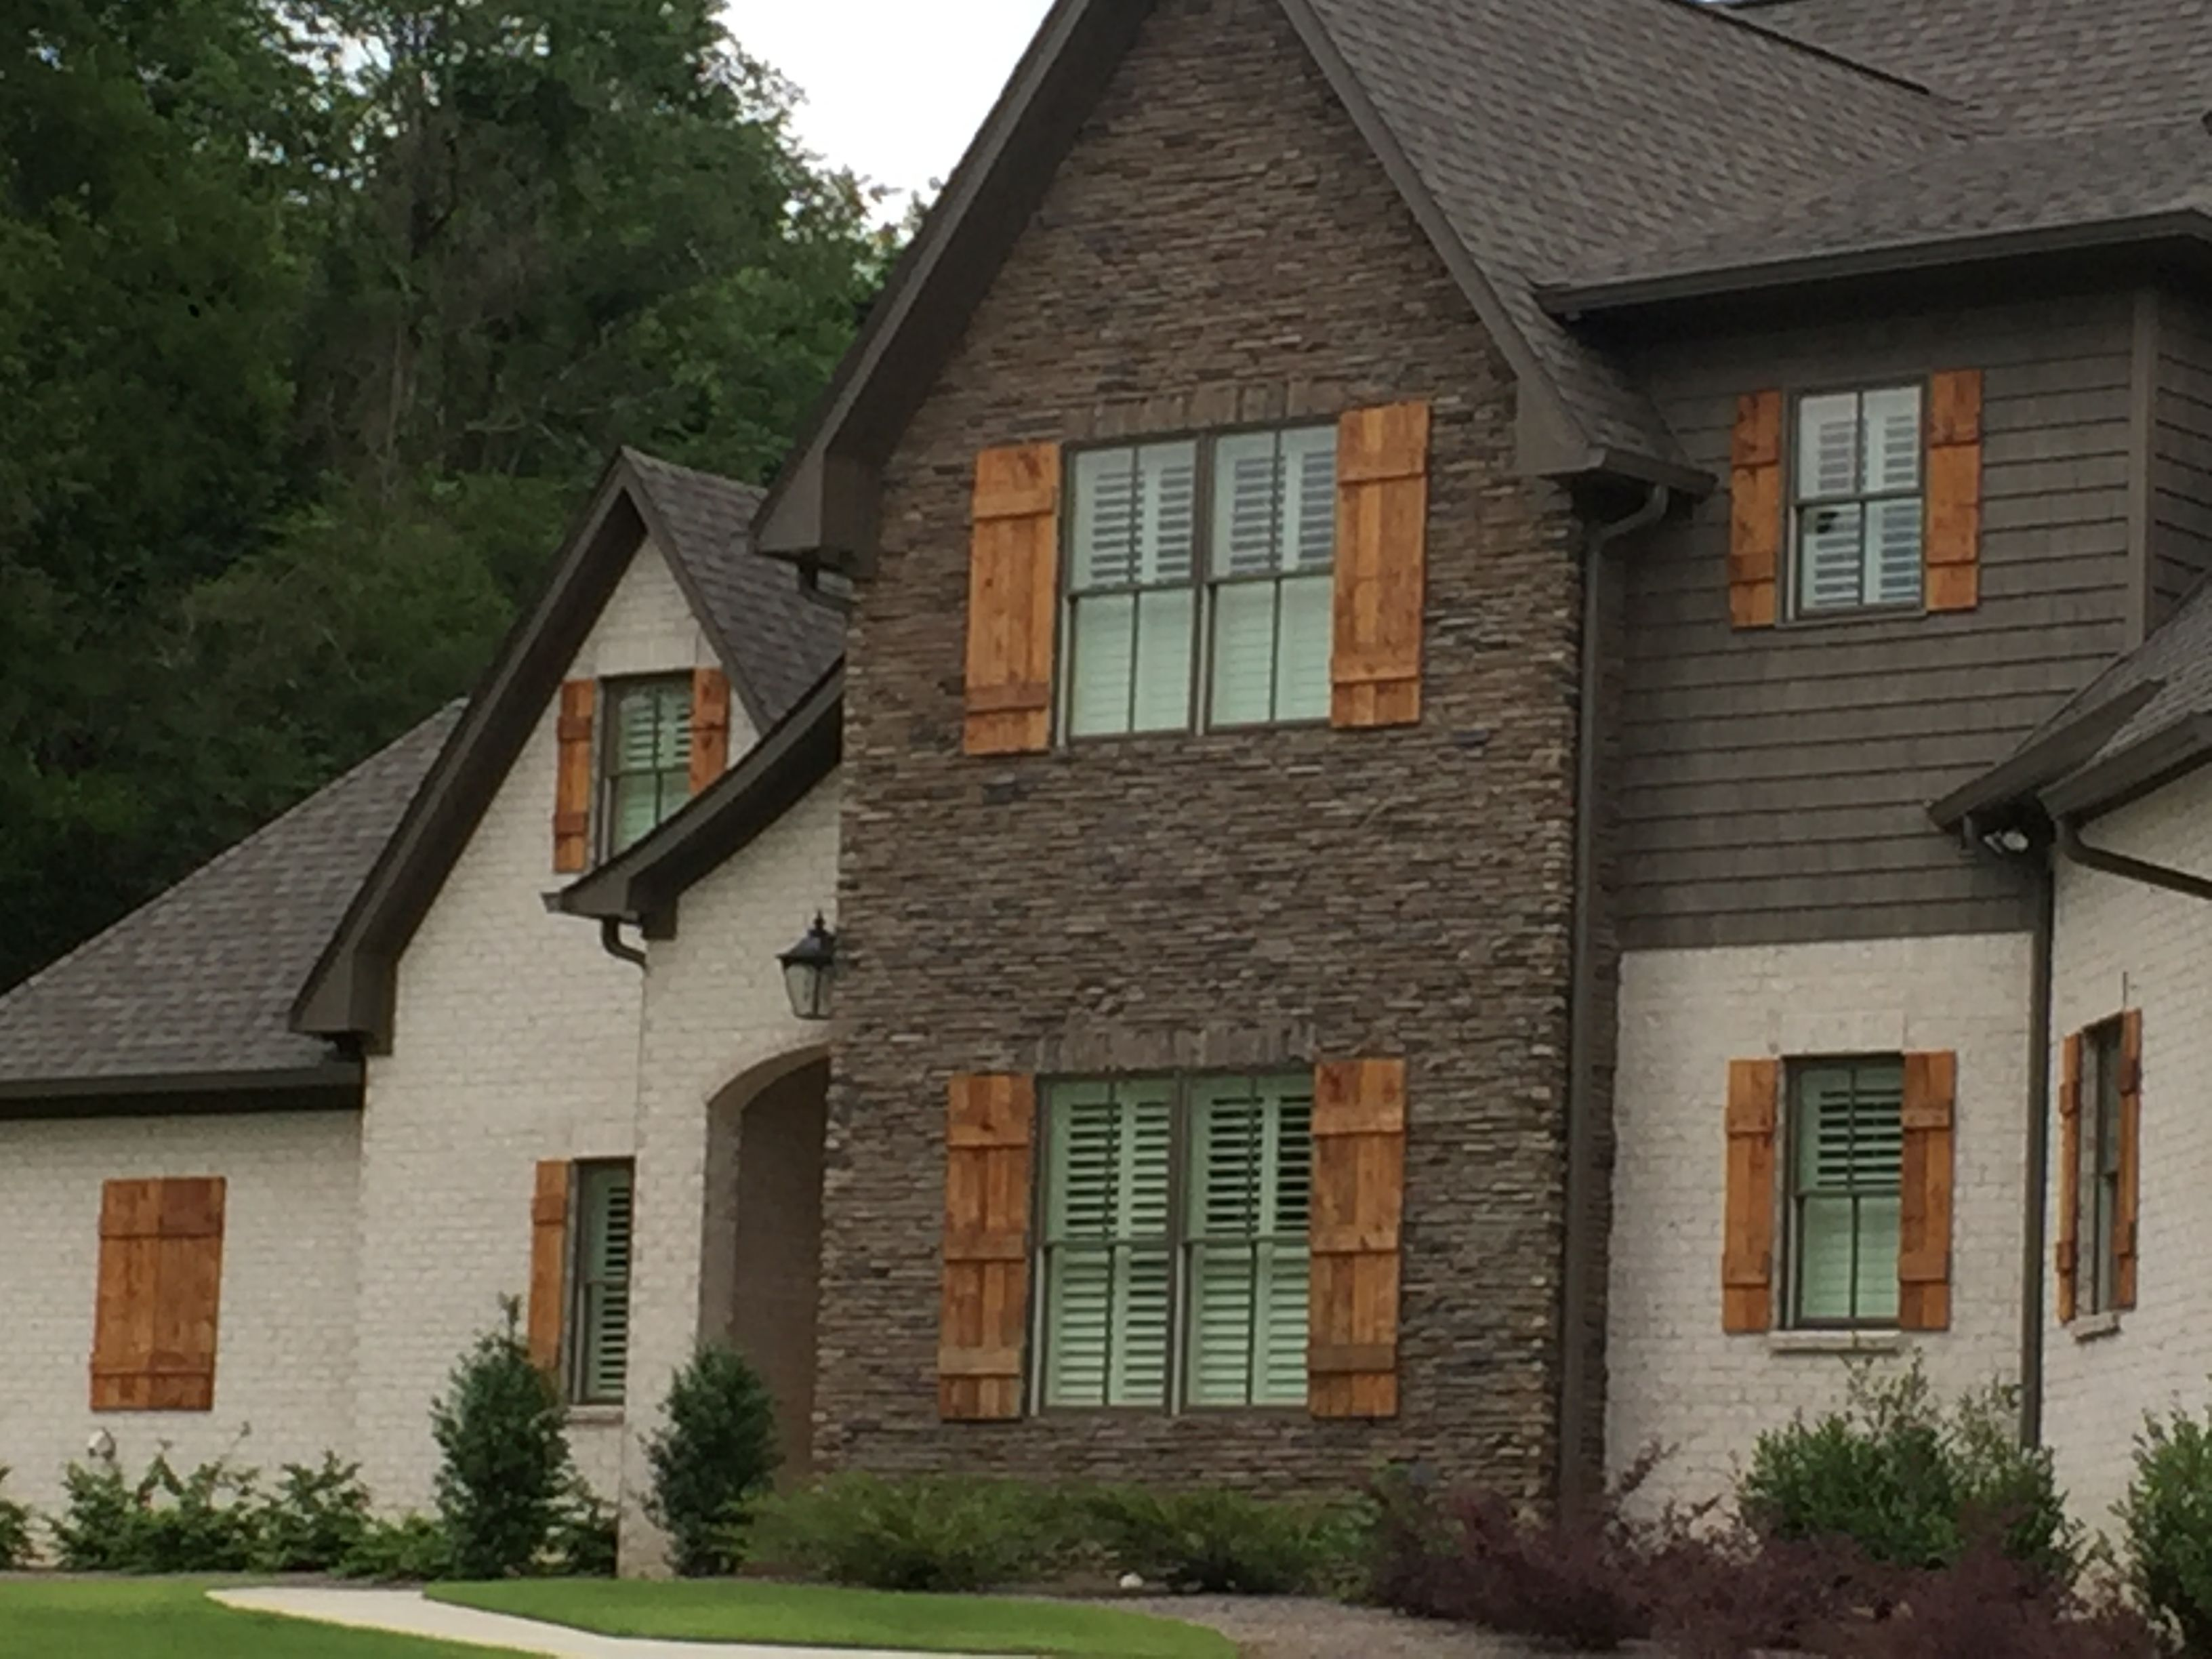 West contemporary exterior raleigh by triangle brick company - Woodhaven Tudor Brick With Savannah Ivory Mortar